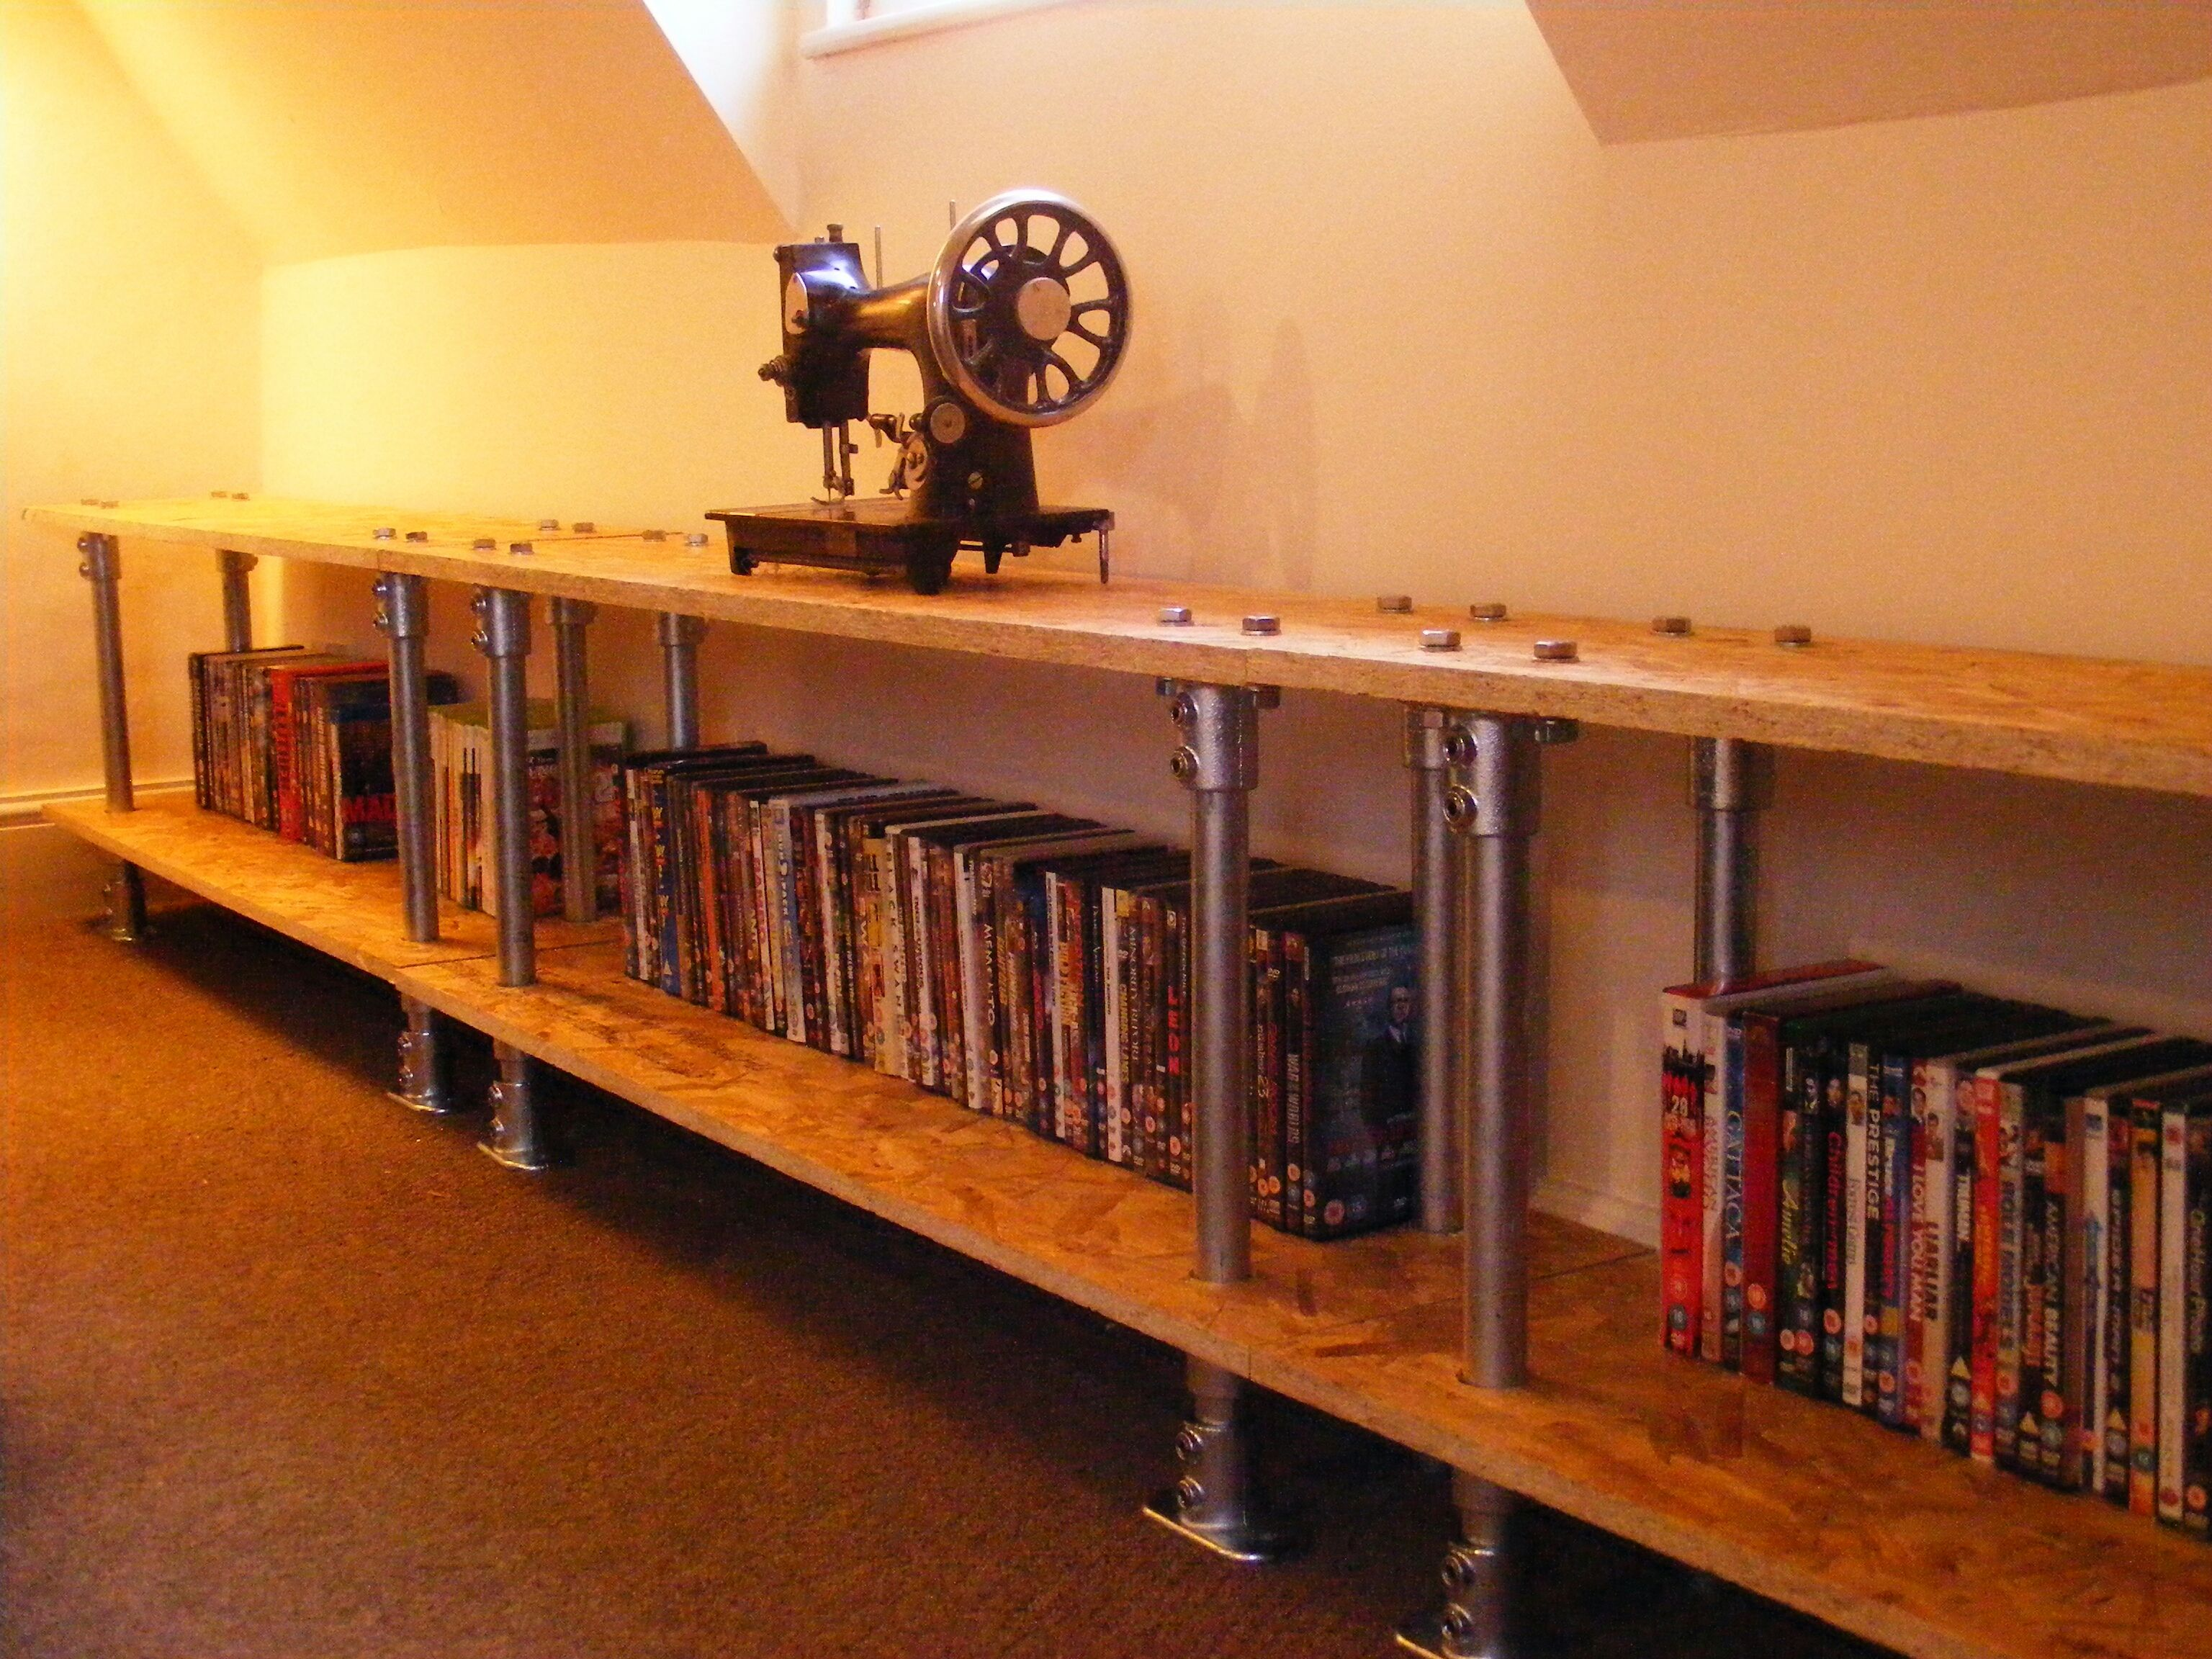 I designed and created some galvanised pipe with OSB shelving and